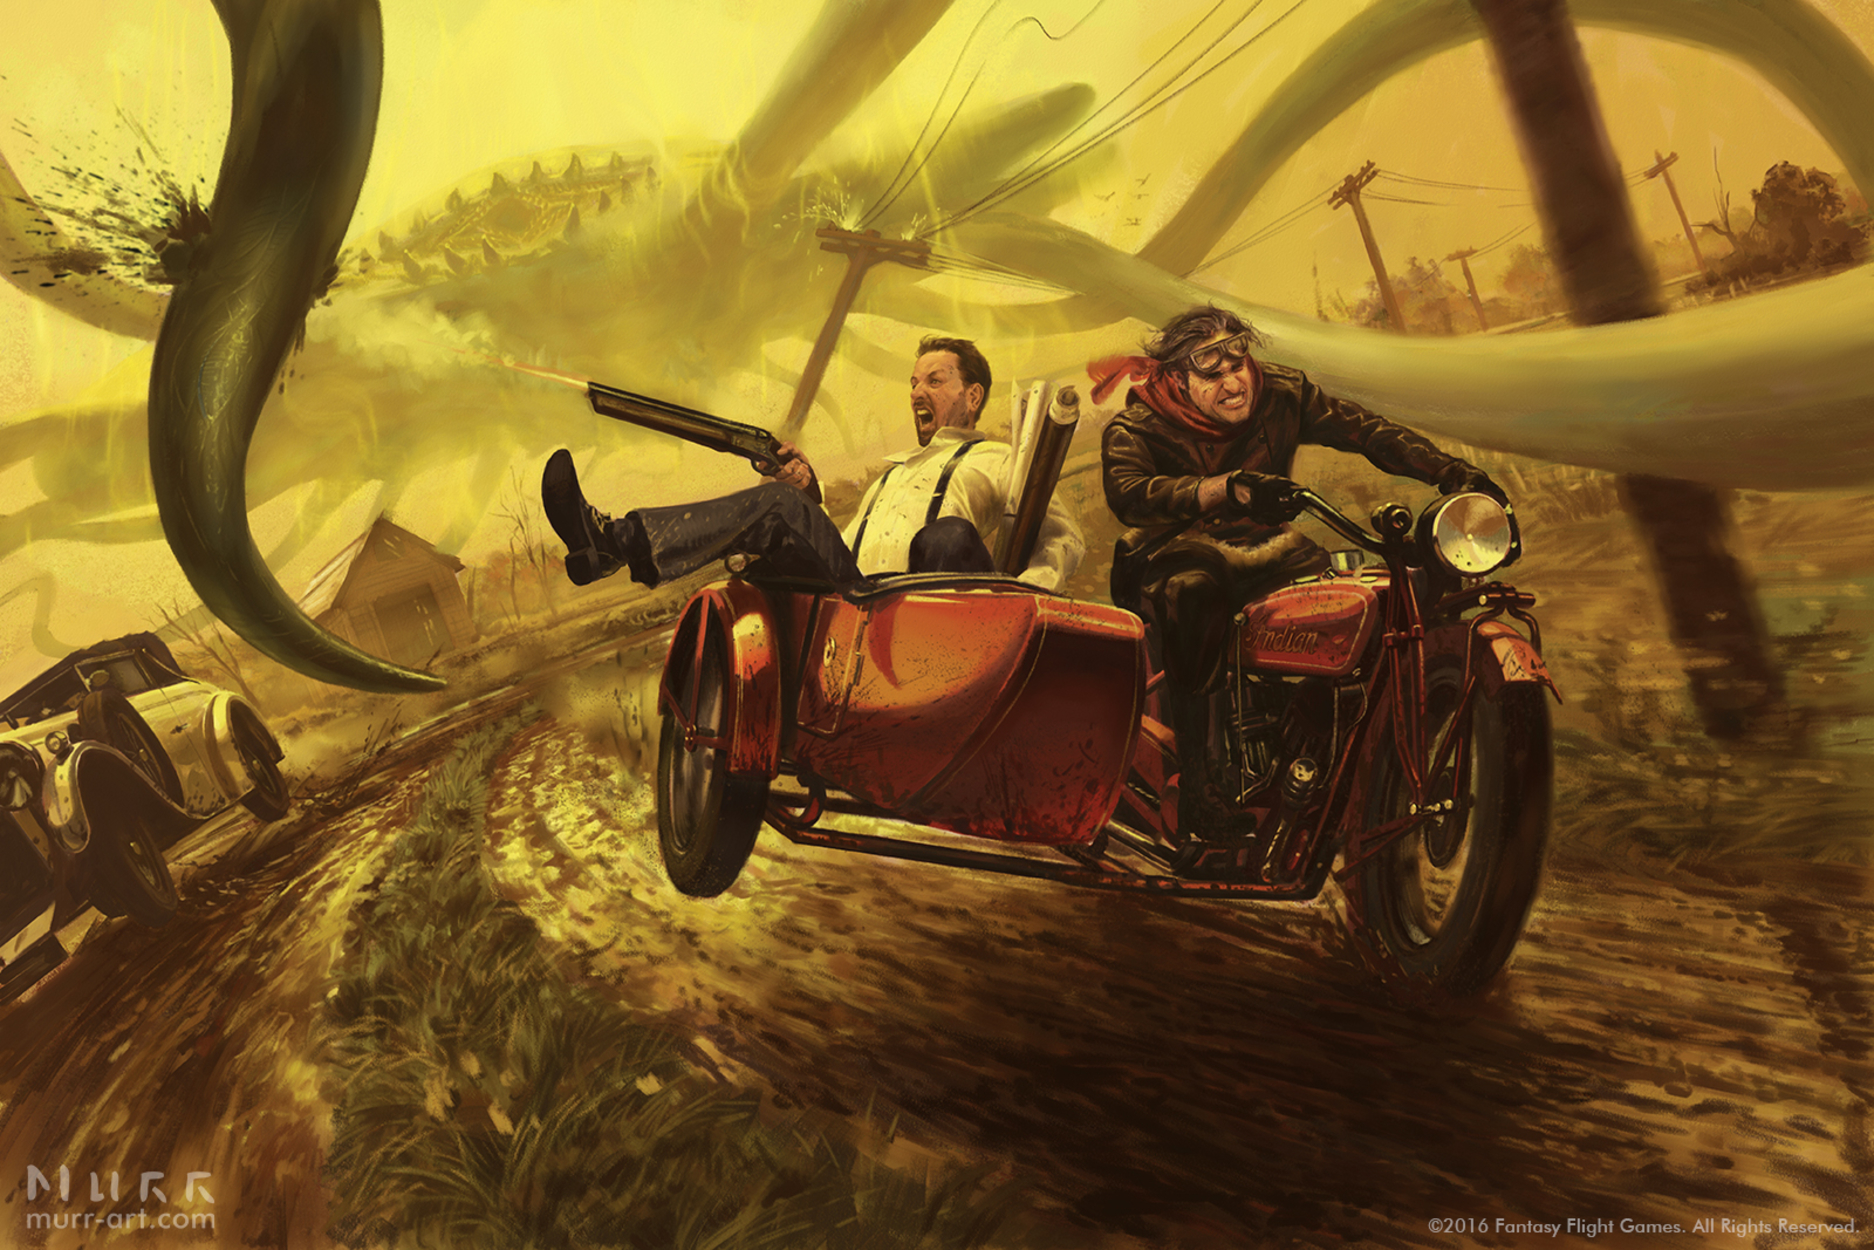 Narrow Escape Artwork by Jake Murray